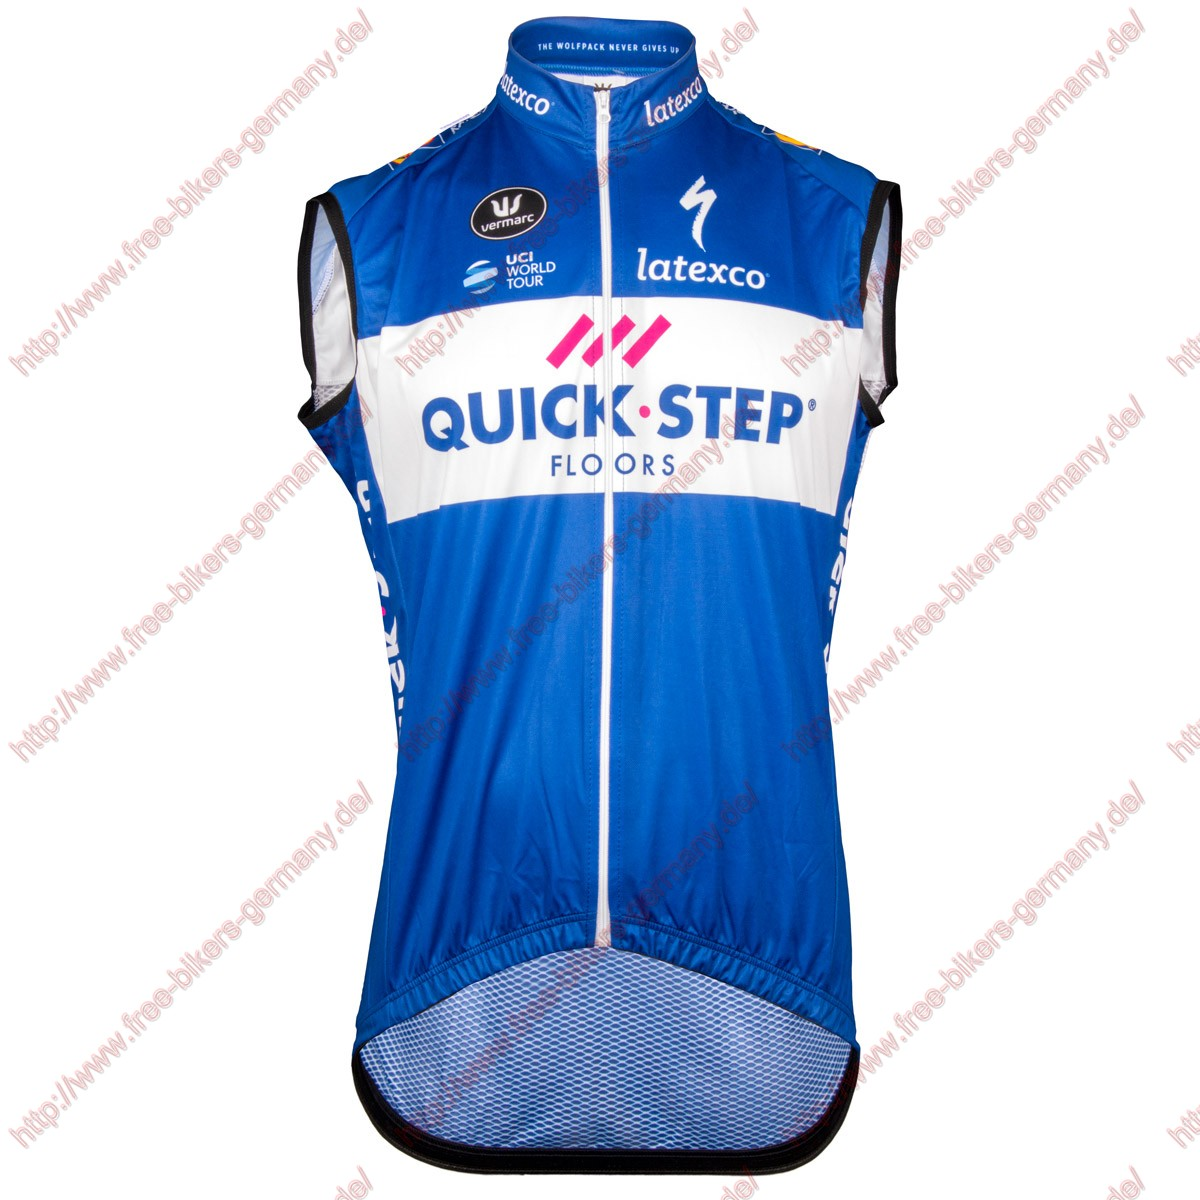 Radsport Quick Step Floors 2018 Windstopper Ärmelloses Trikot Kurz